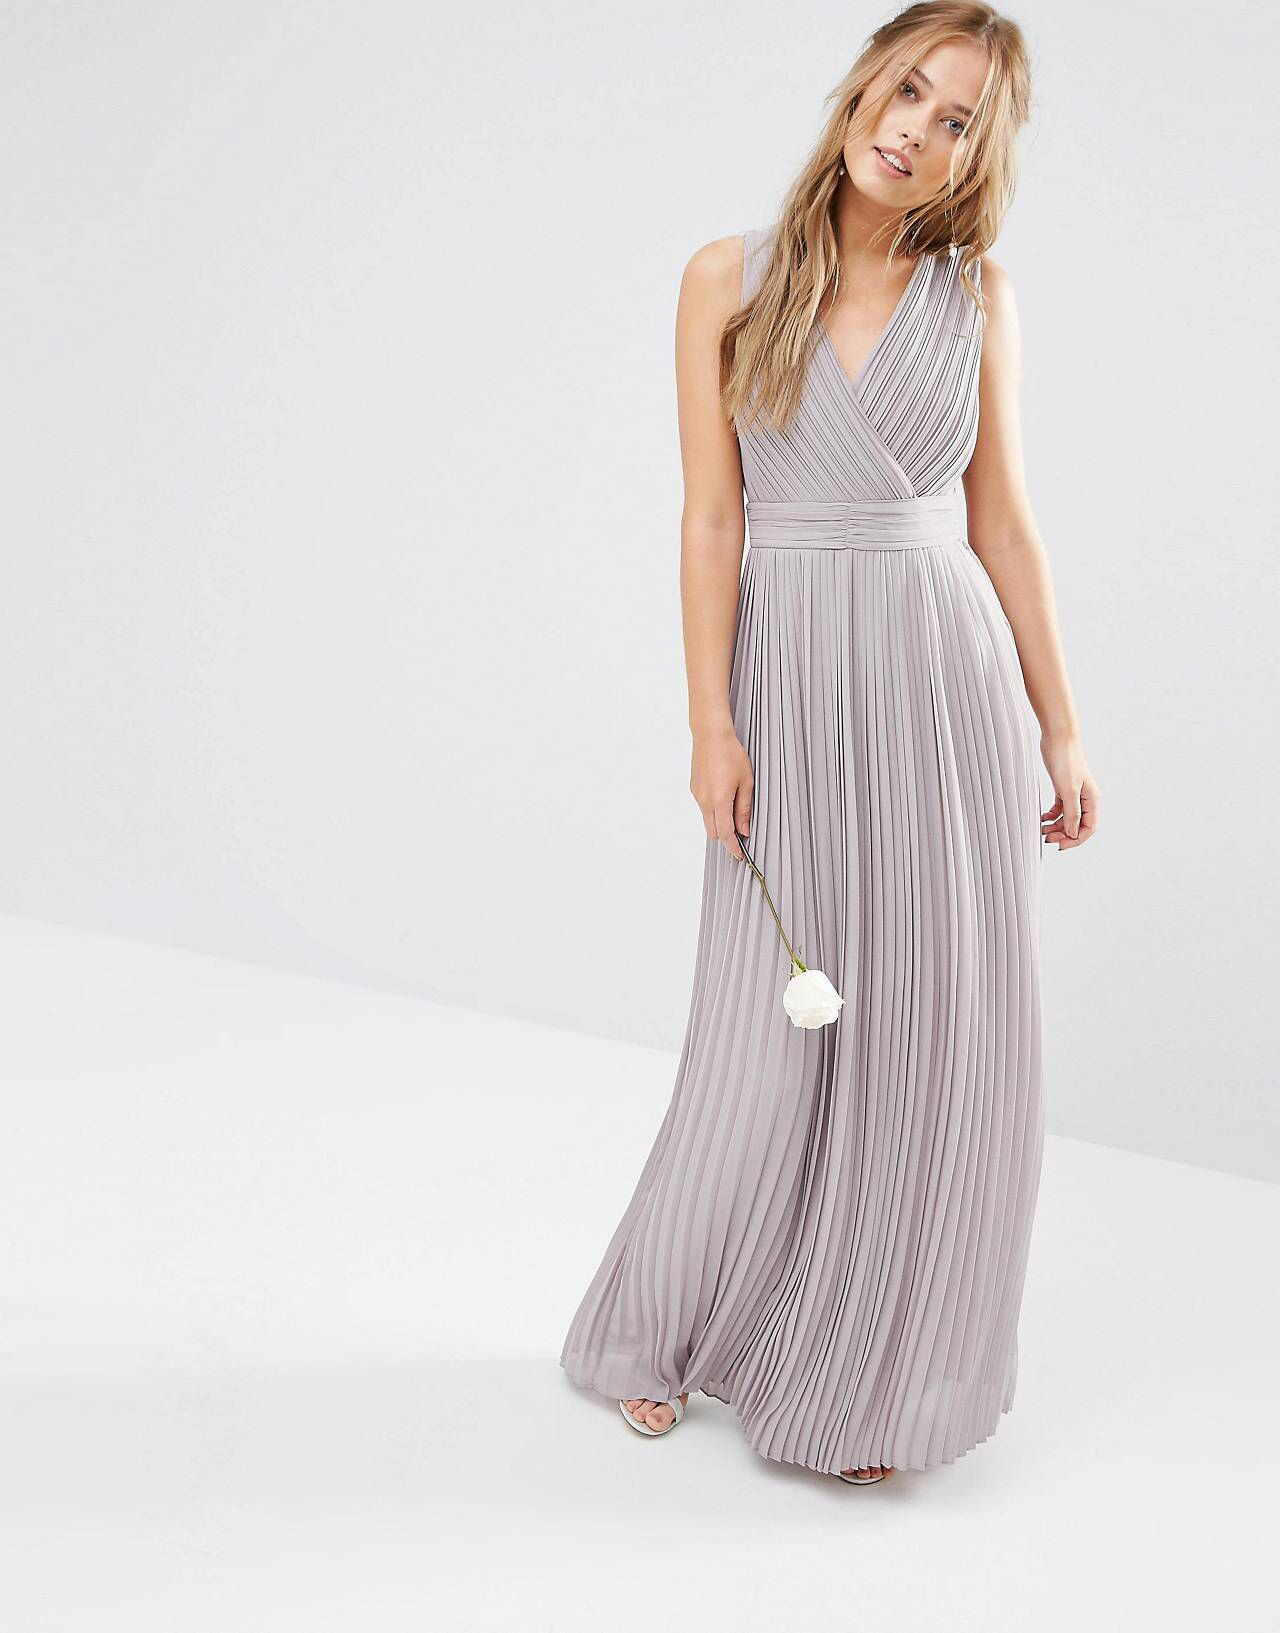 Asos wedding day guest dresses  LOVE this from ASOS  ราตรยาว  Pinterest  Maids and Wedding